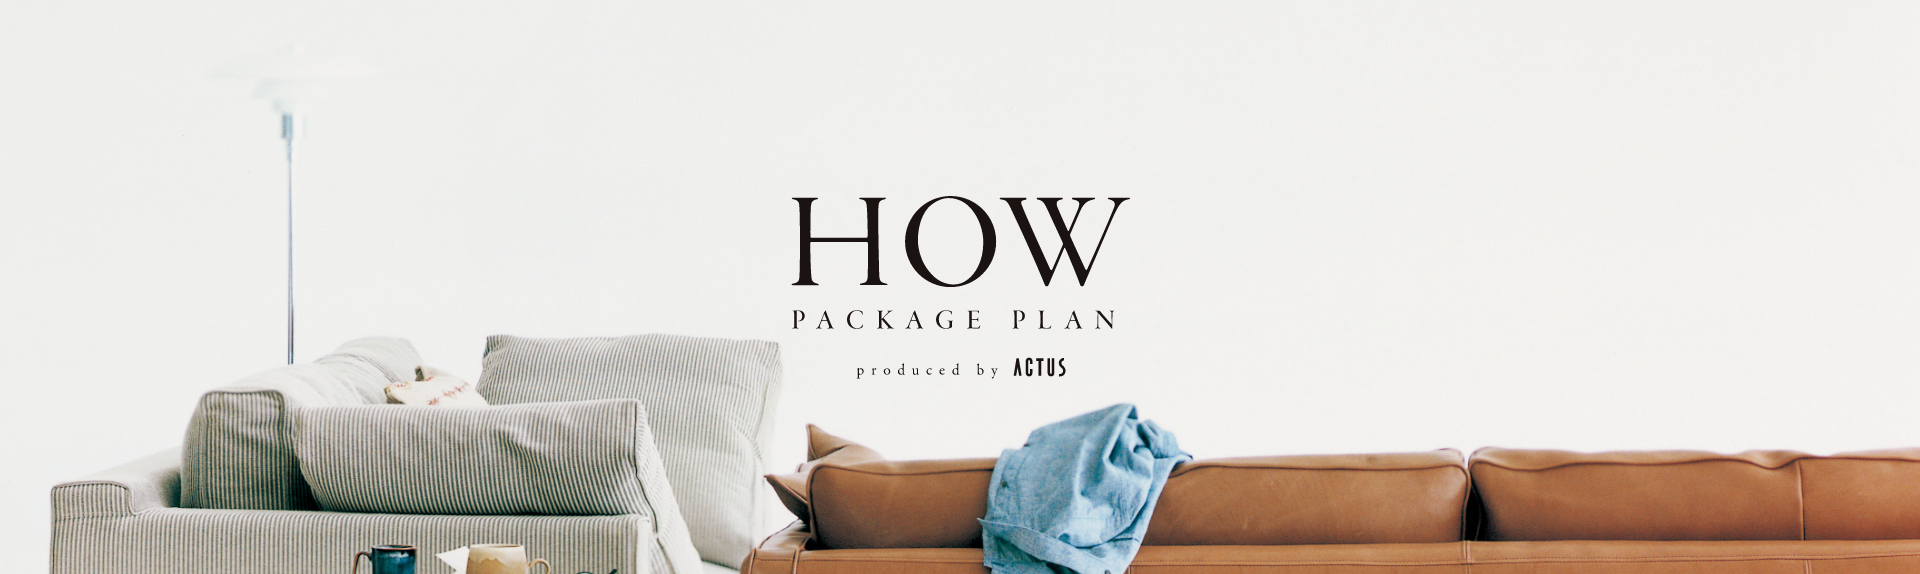 HOW Package Plan produce by ACTUS